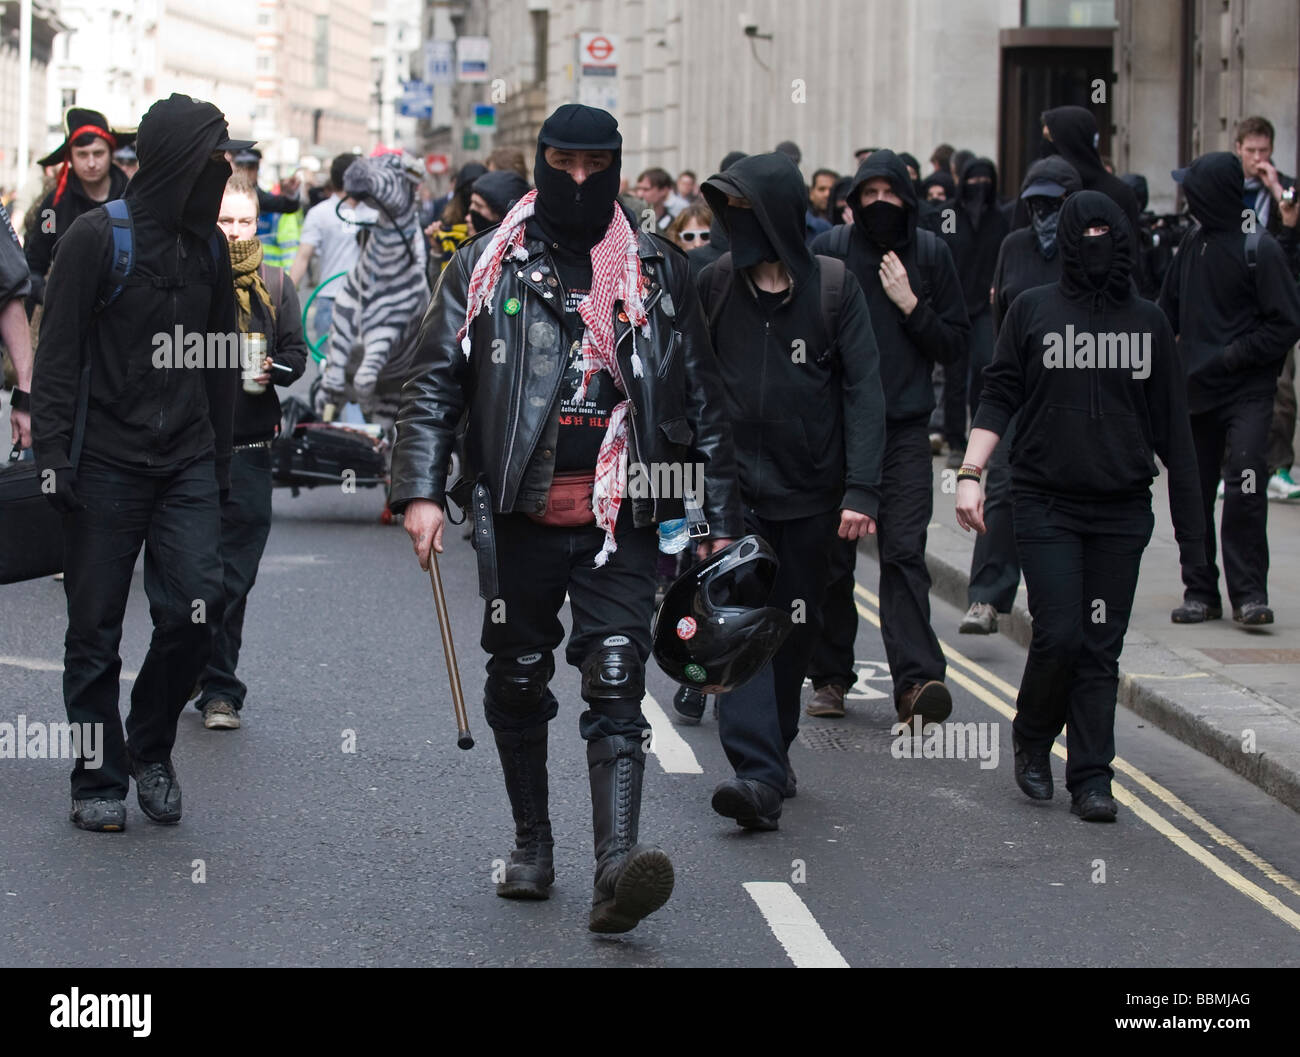 Group of masked anarchists at protest in the City ahead of the G20 summit of world leaders, 1 April 2009 - Stock Image